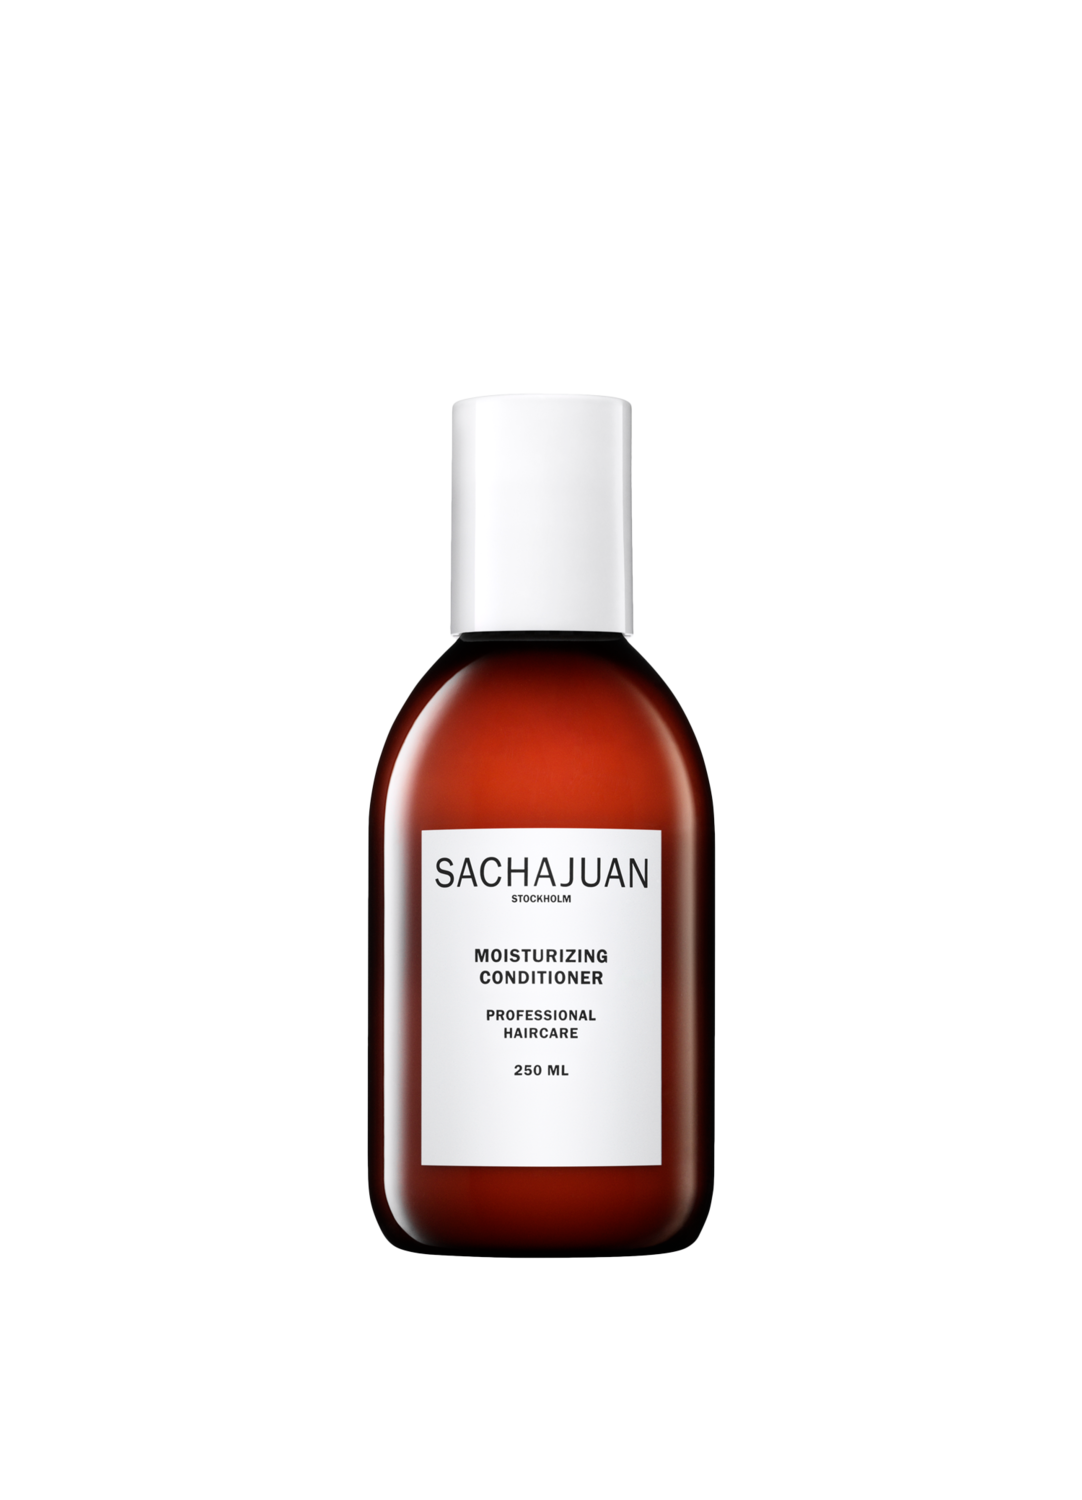 sachajuan | moisturizing conditioner[product_type ]sachajuan - Kiss and Makeup